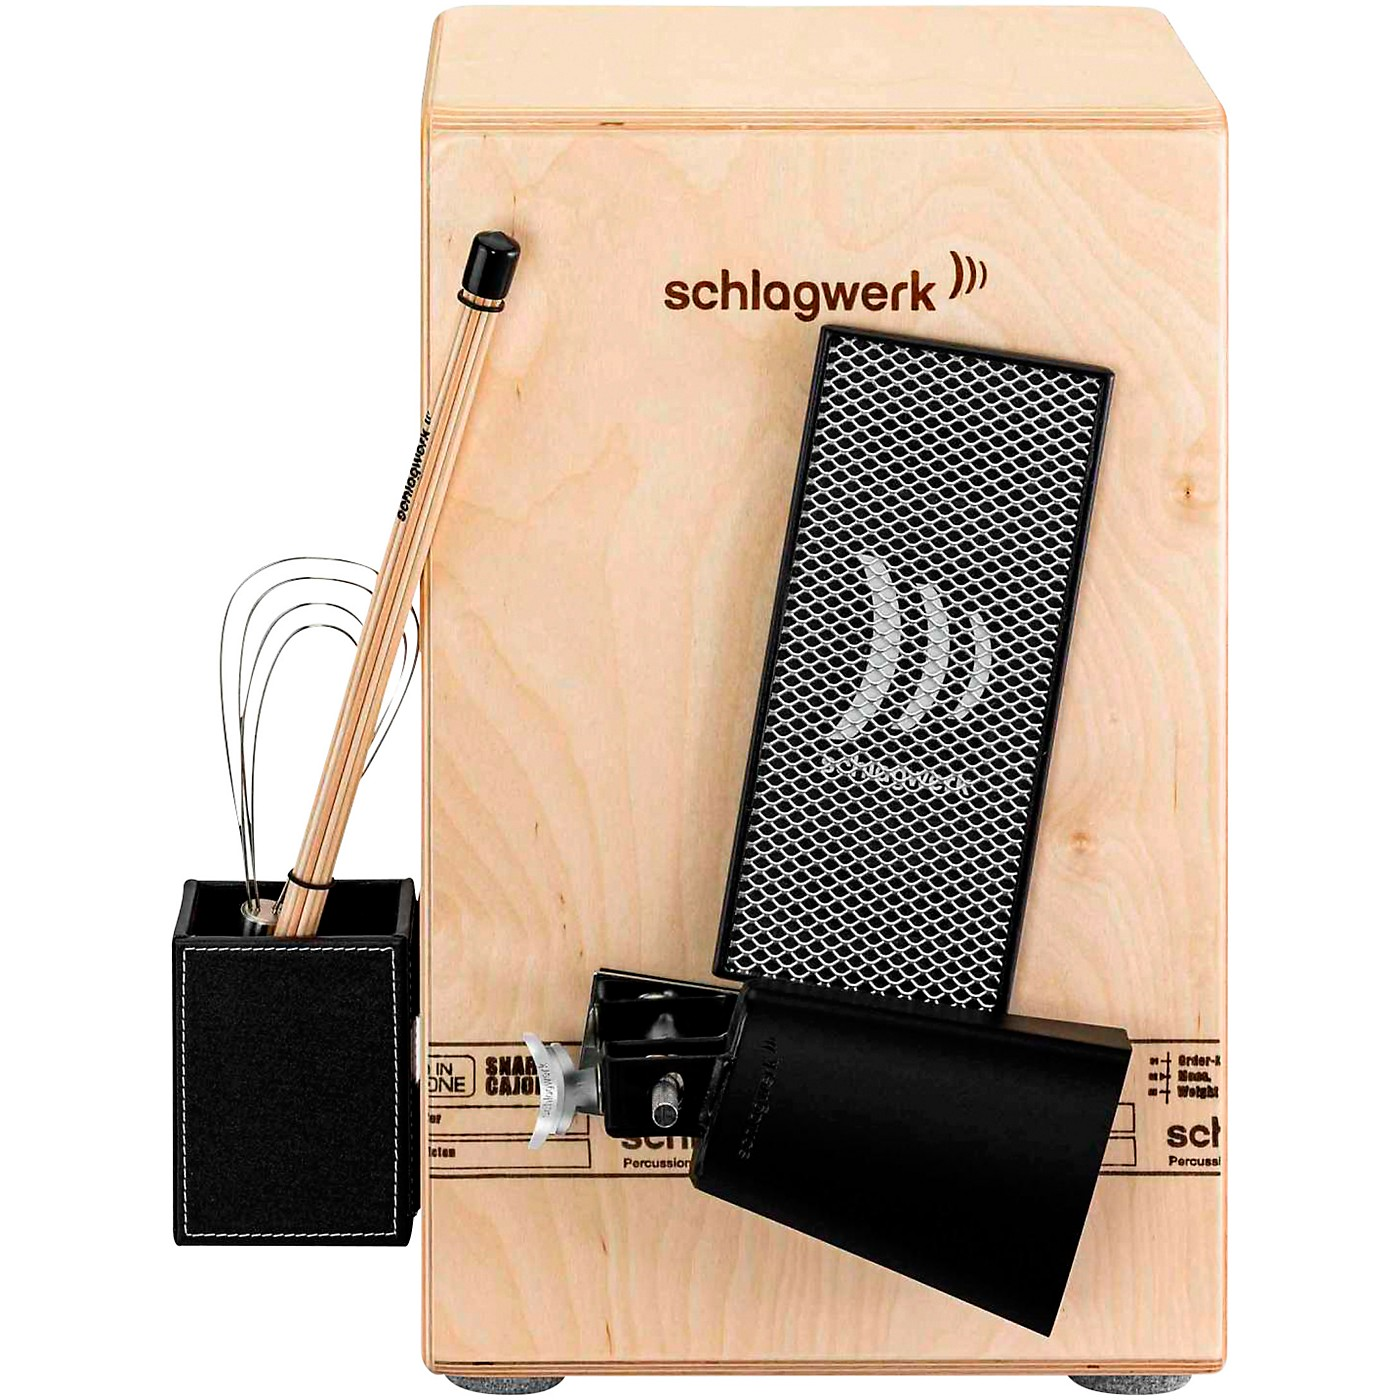 SCHLAGWERK Take Five Percussion Set - Cowbell, Scratch Board / Scratcher, Brush Boy & Rod Percussion Holder thumbnail